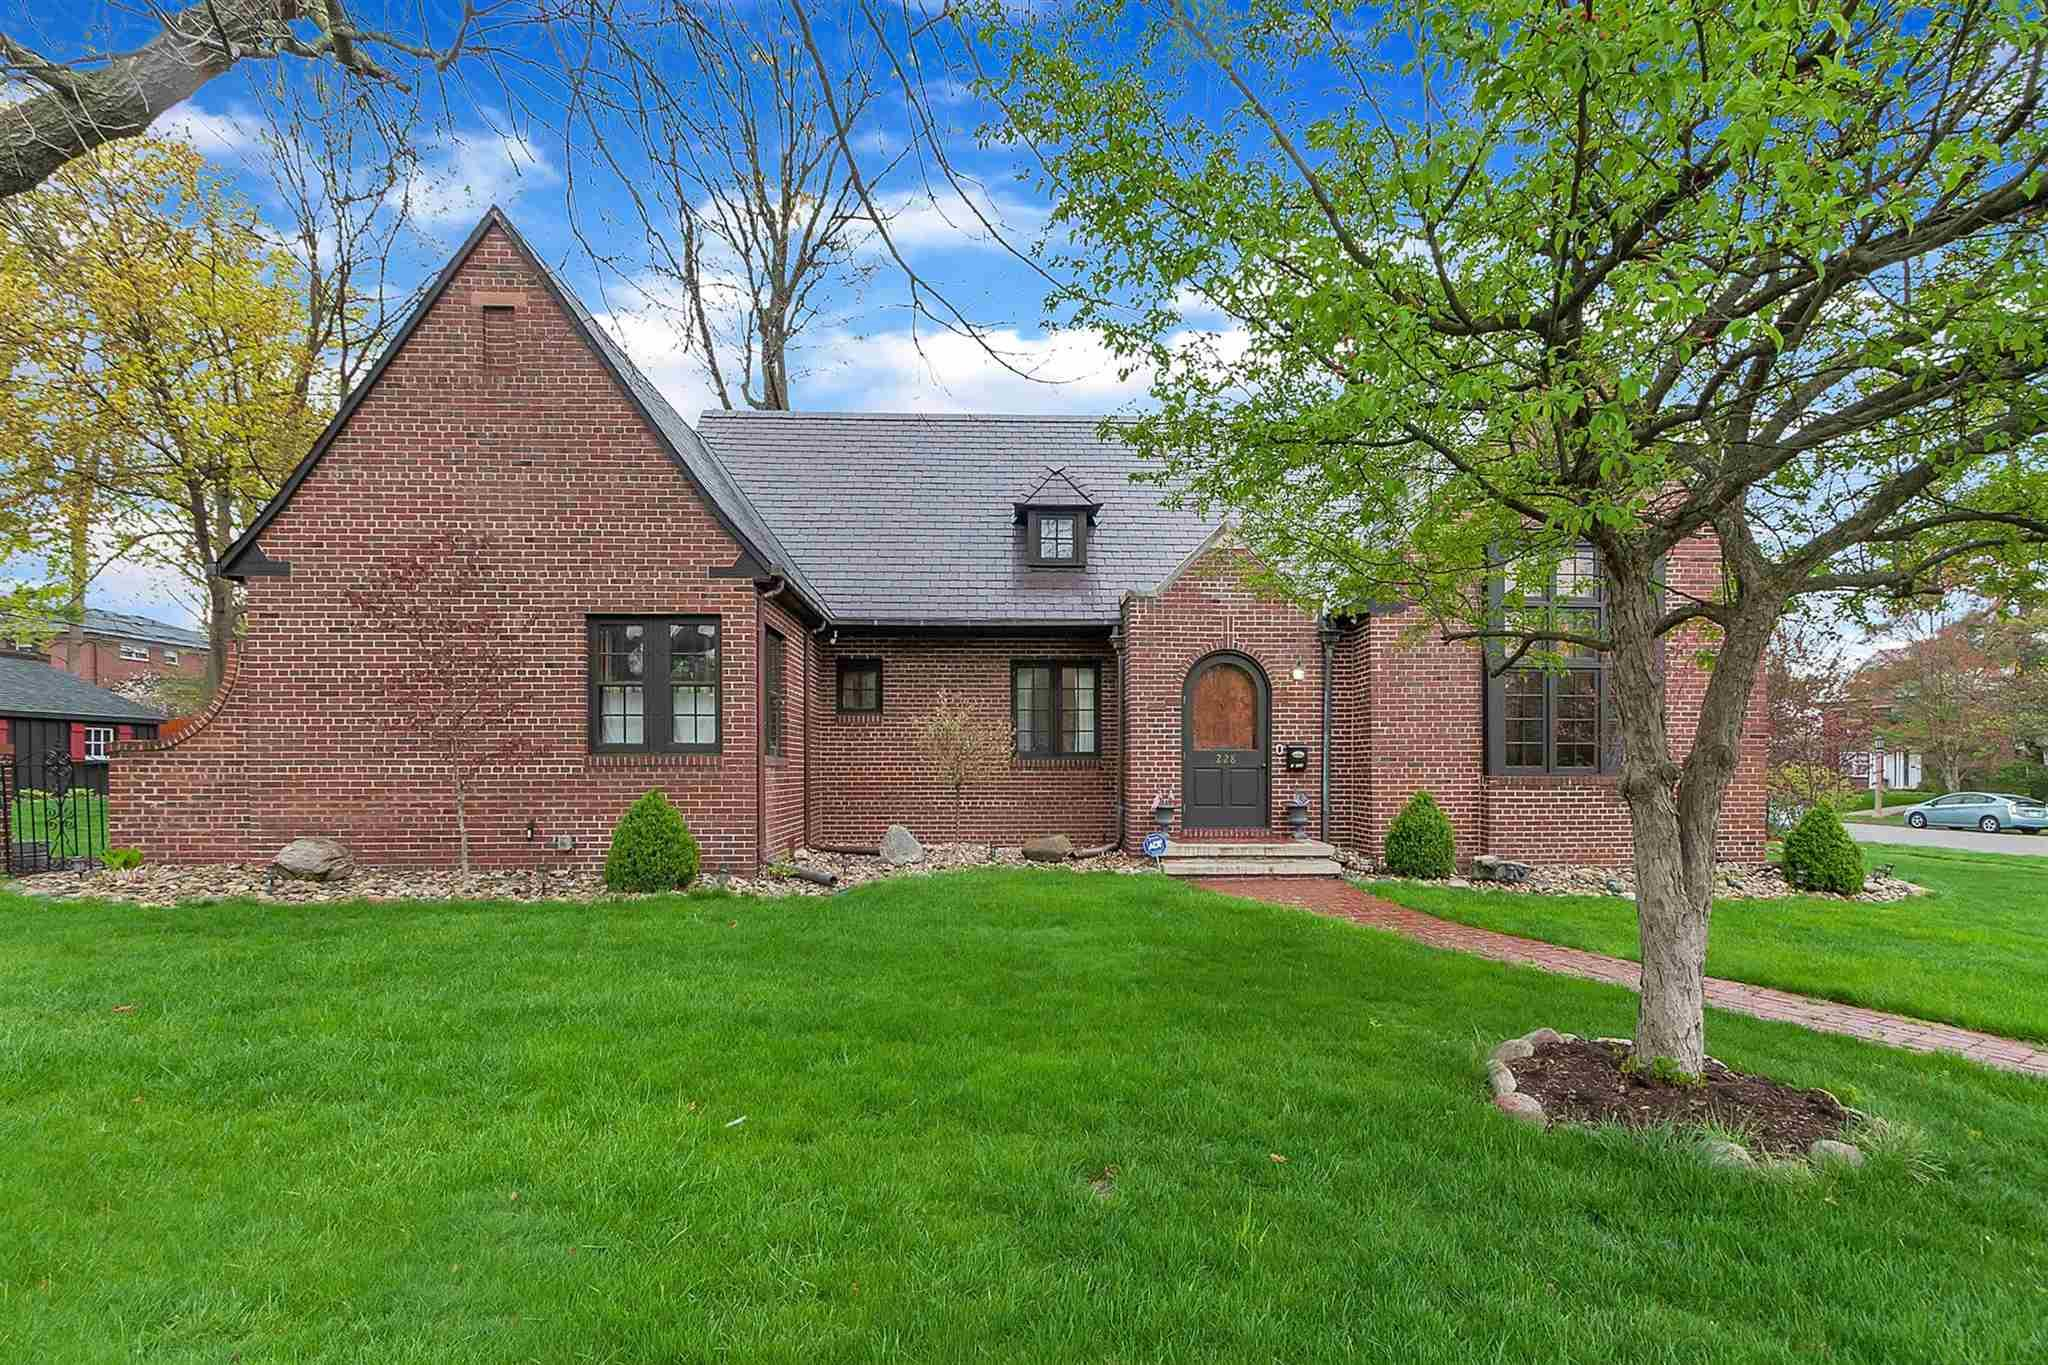 228 S Sunnyside South Bend, IN 46615